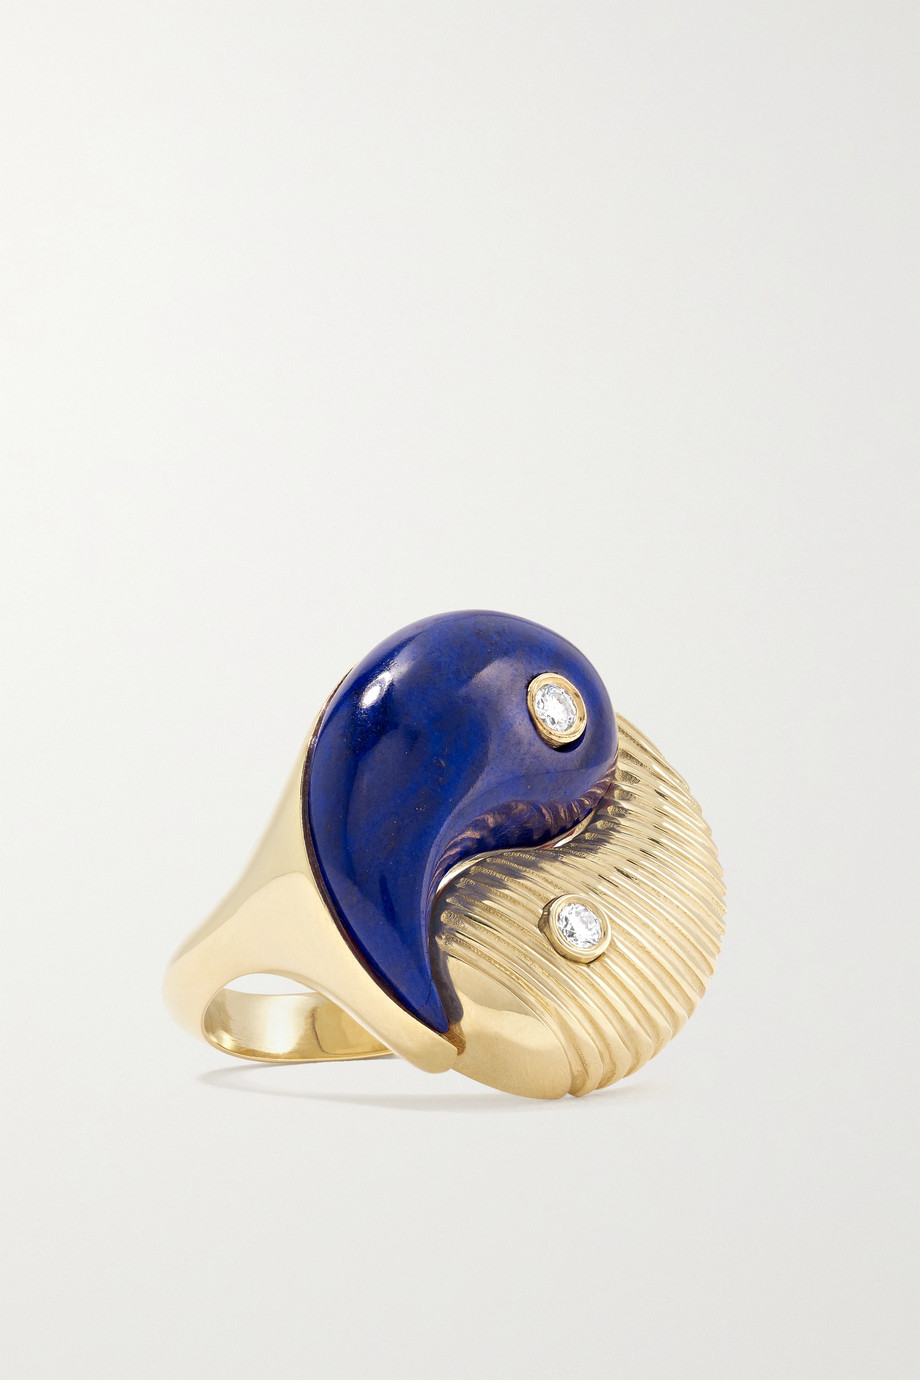 RETROUVAÍ Yin Yang 14-karat gold, lapis lazuli and diamond ring